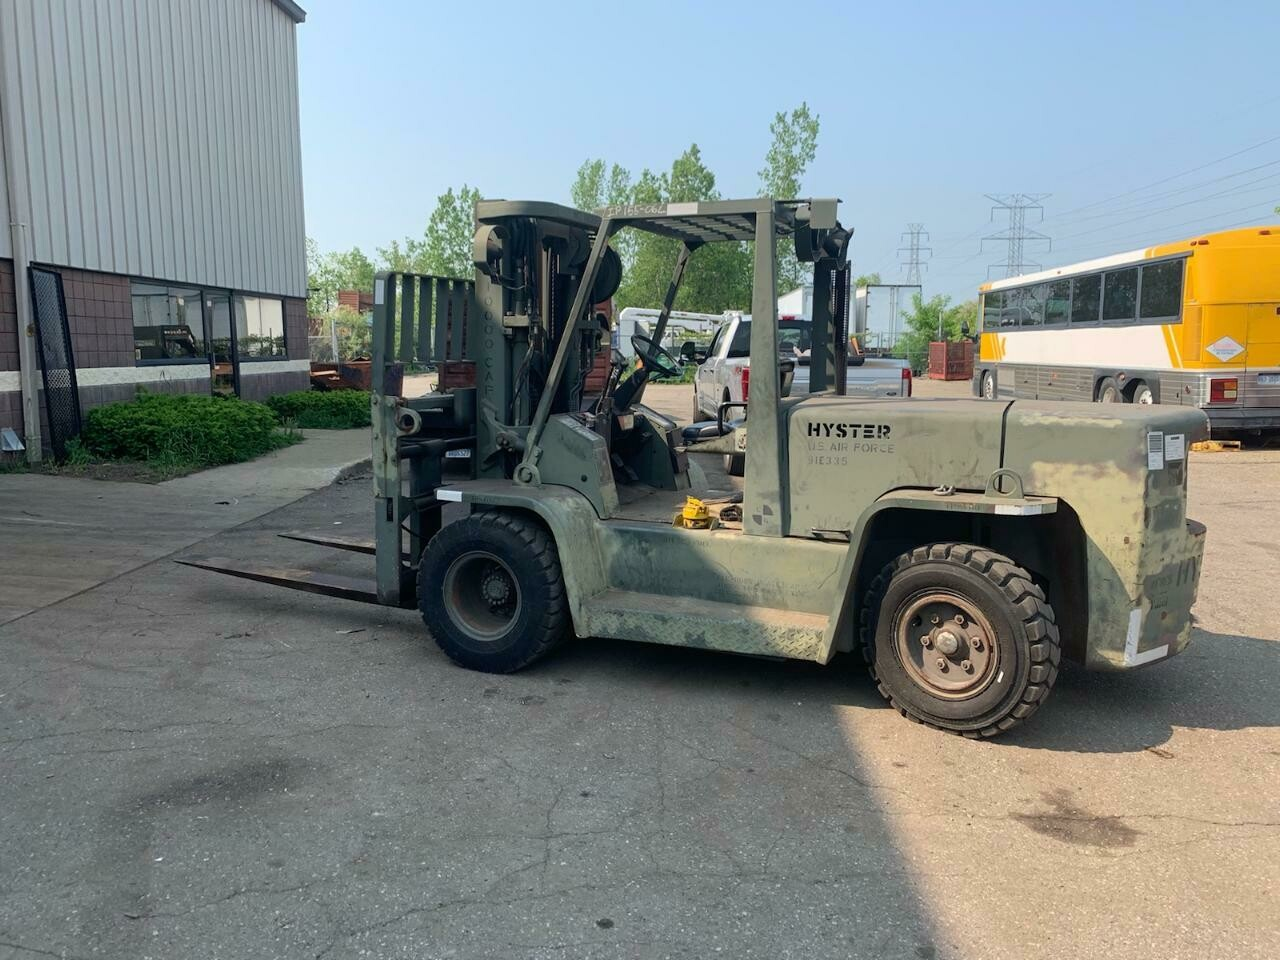 15,500lb Hyster H155XL Forklift For Sale 7.75 Ton